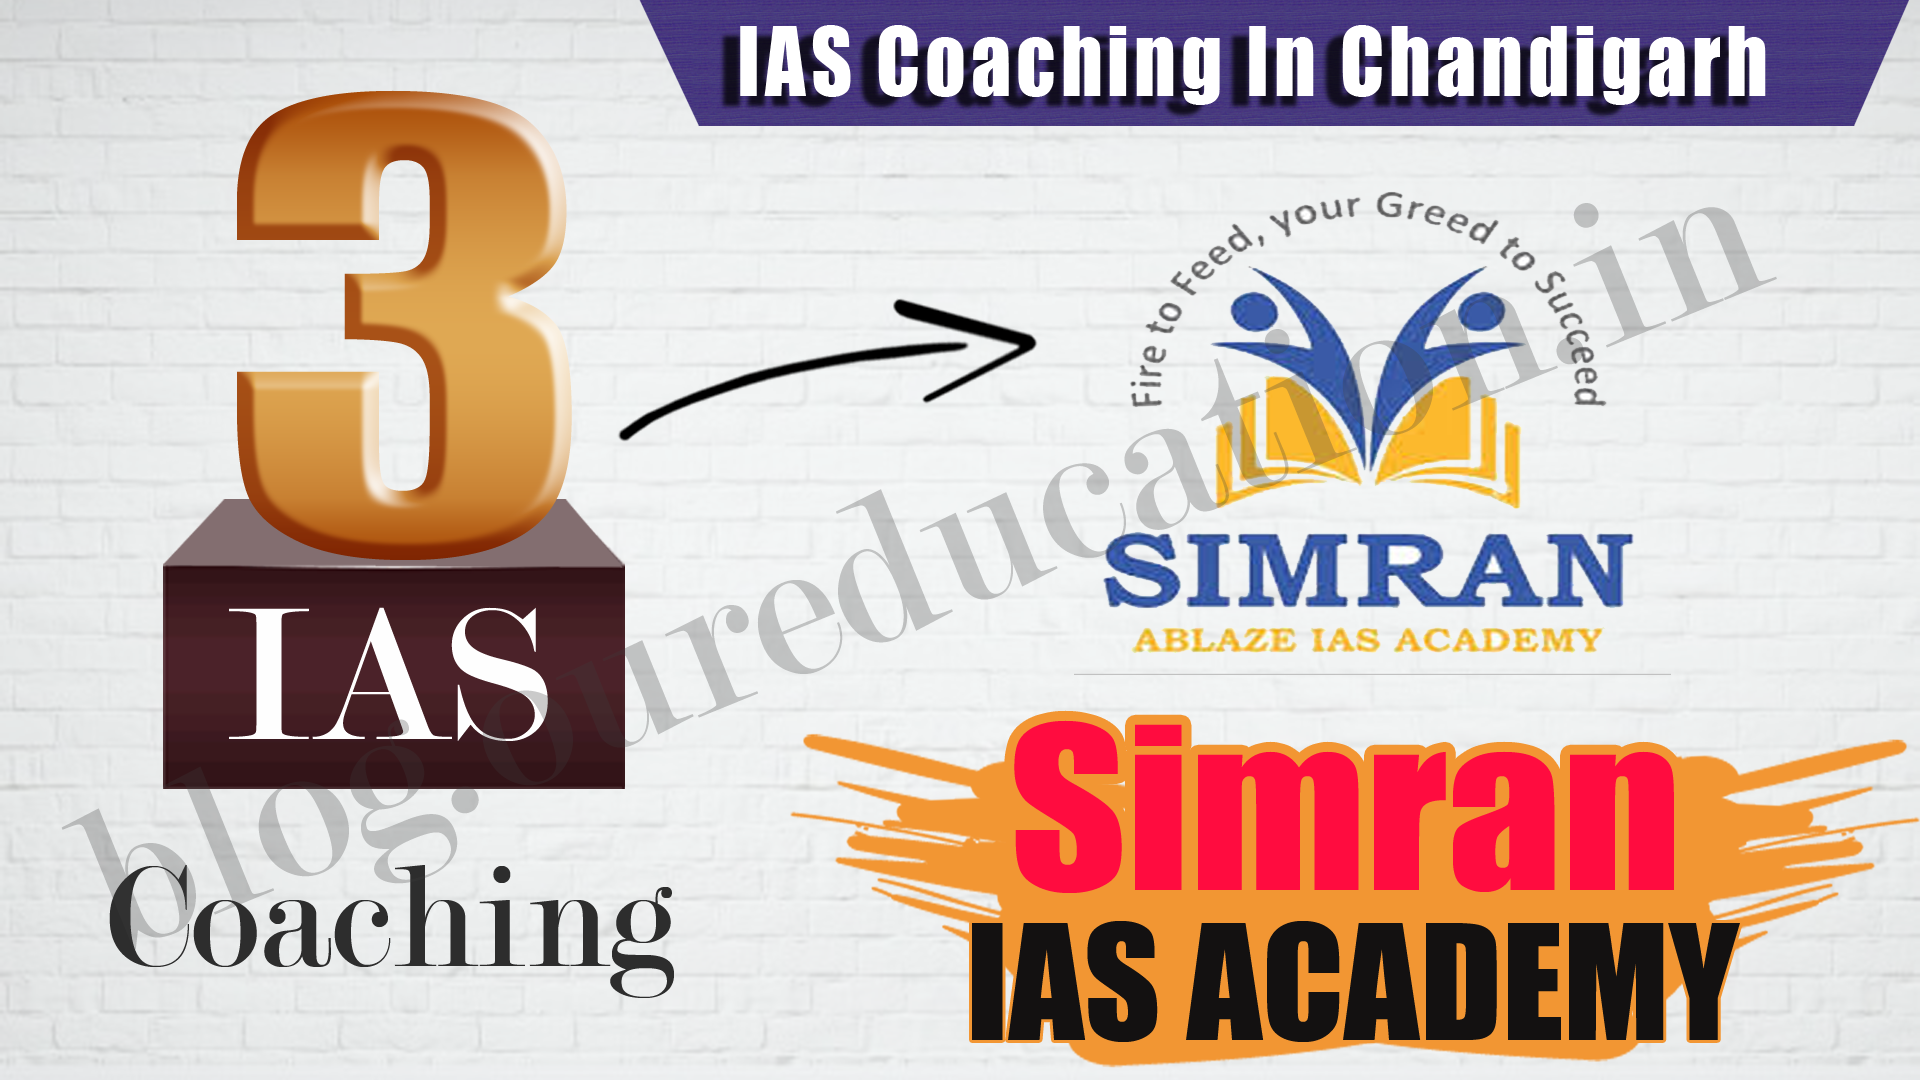 Top 10 IAS Coaching Institutes in Chandigarh - UPSC Toppers Strategy